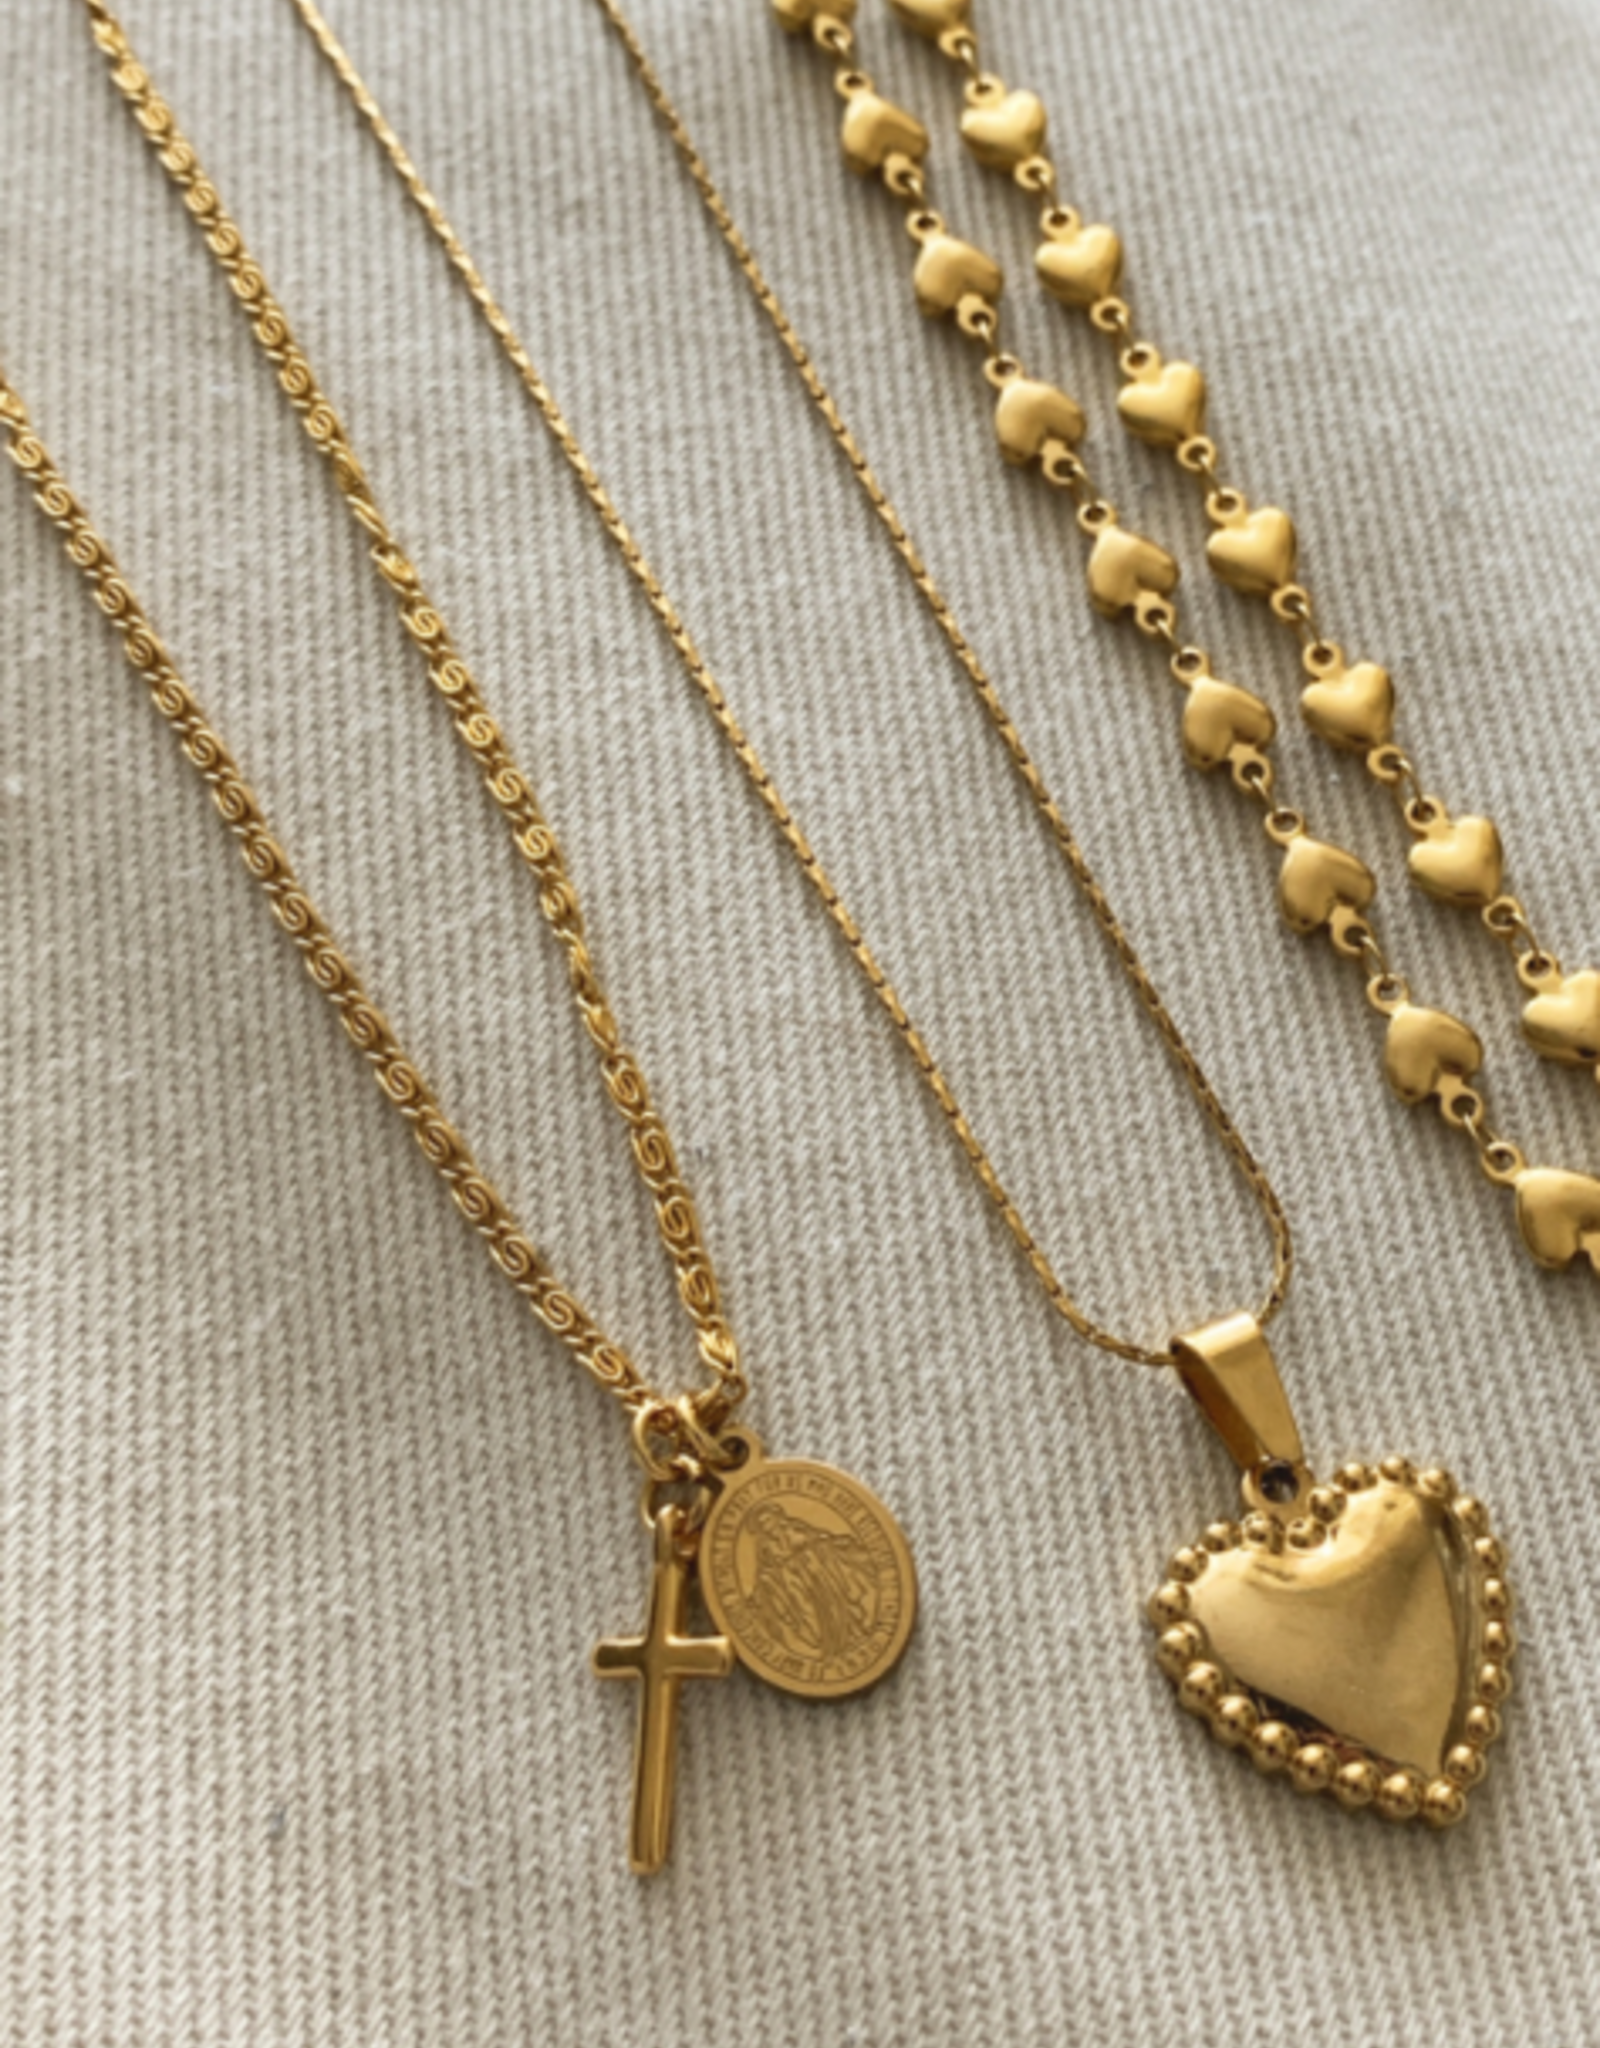 2 The Moon 'n Back 2 The Moon 'n Back Necklace Virgin Mary & Cross Gold